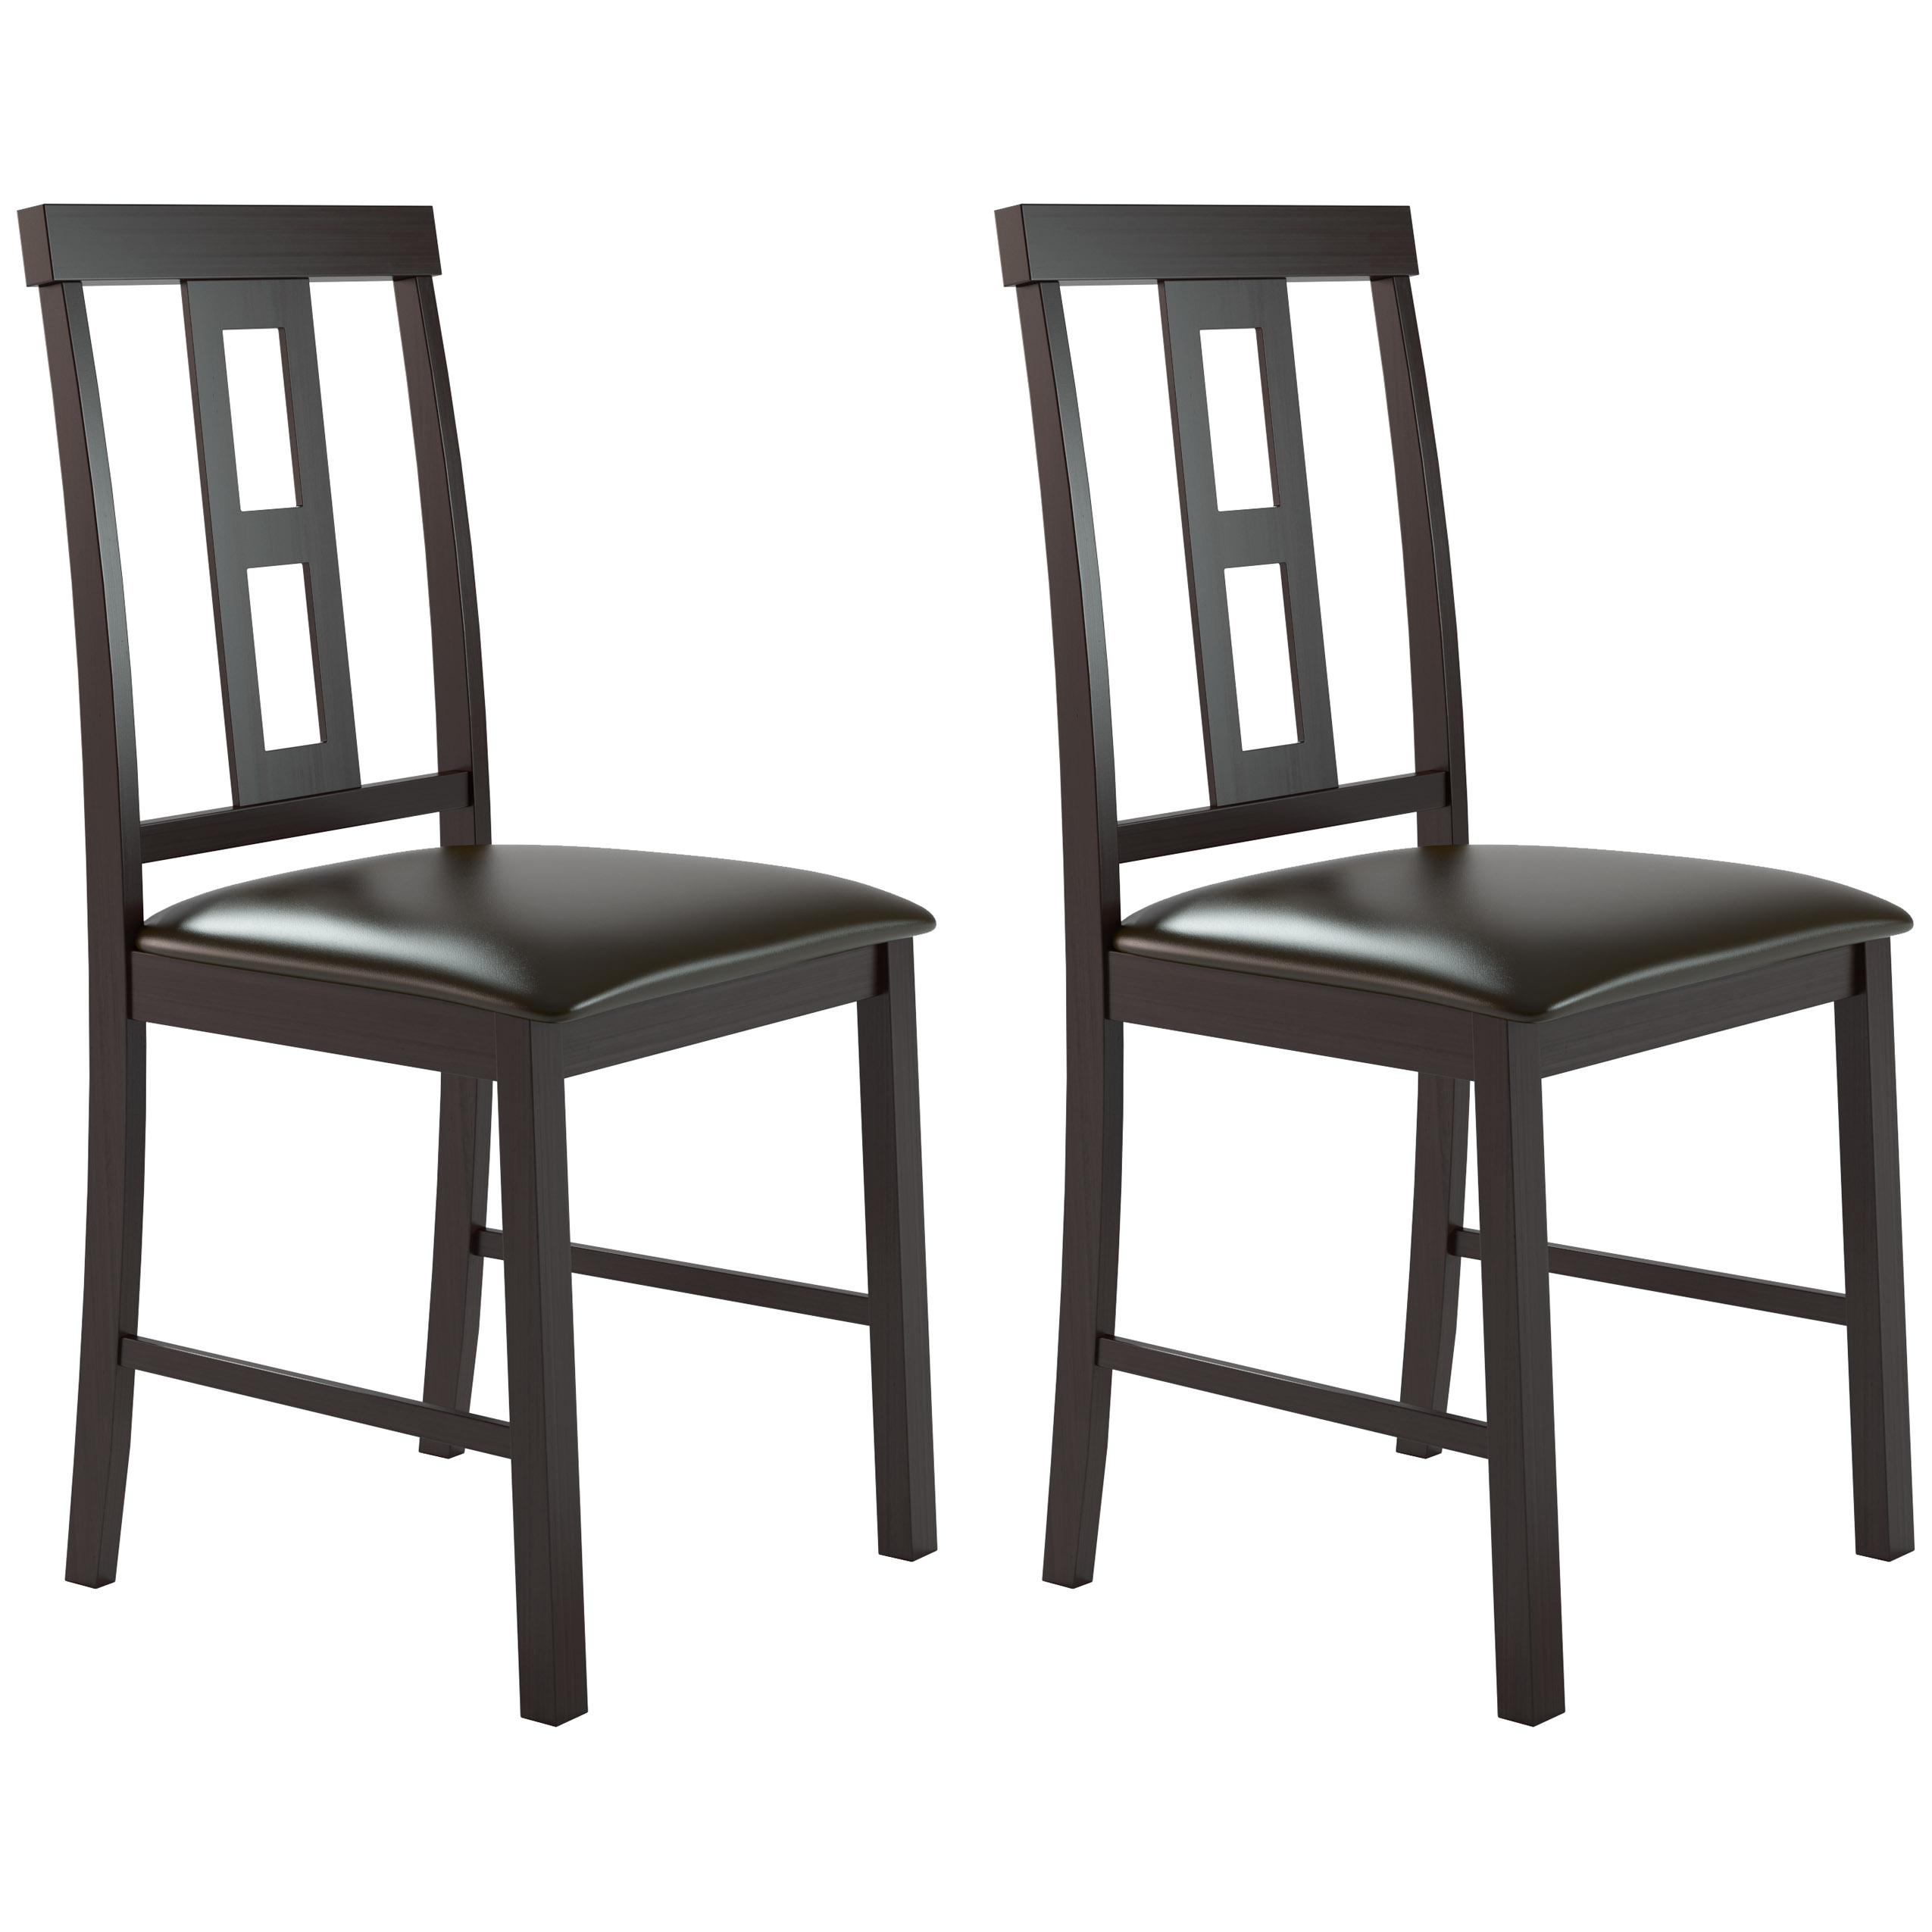 kmart kitchen chairs rent to own homes in kitchener black dining